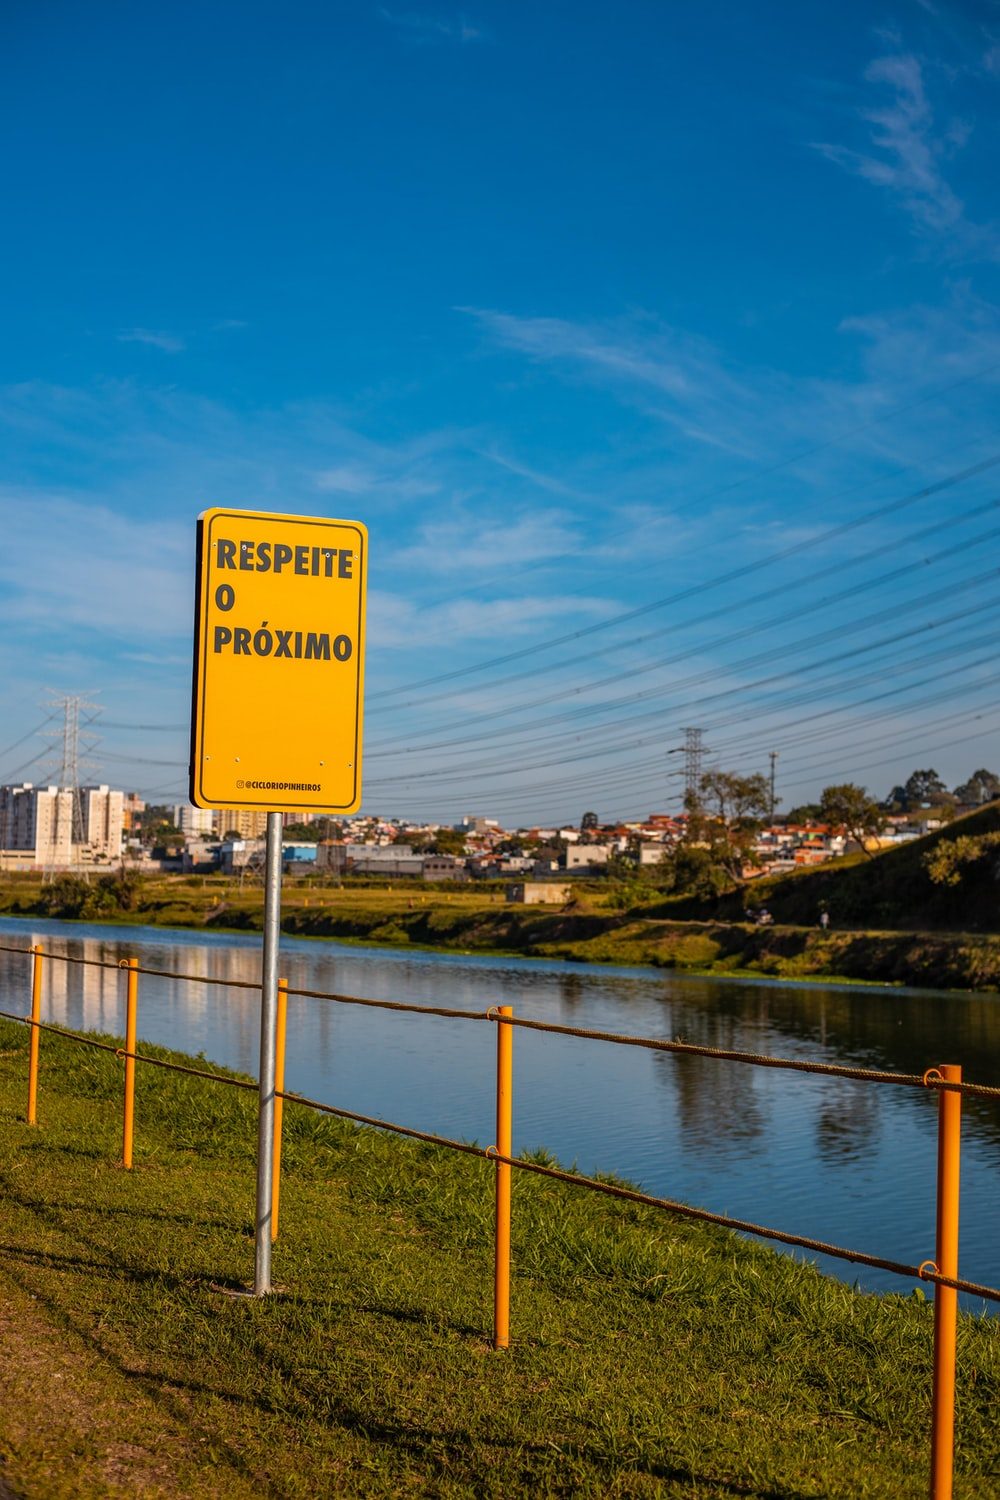 yellow and black road sign near body of water during daytime